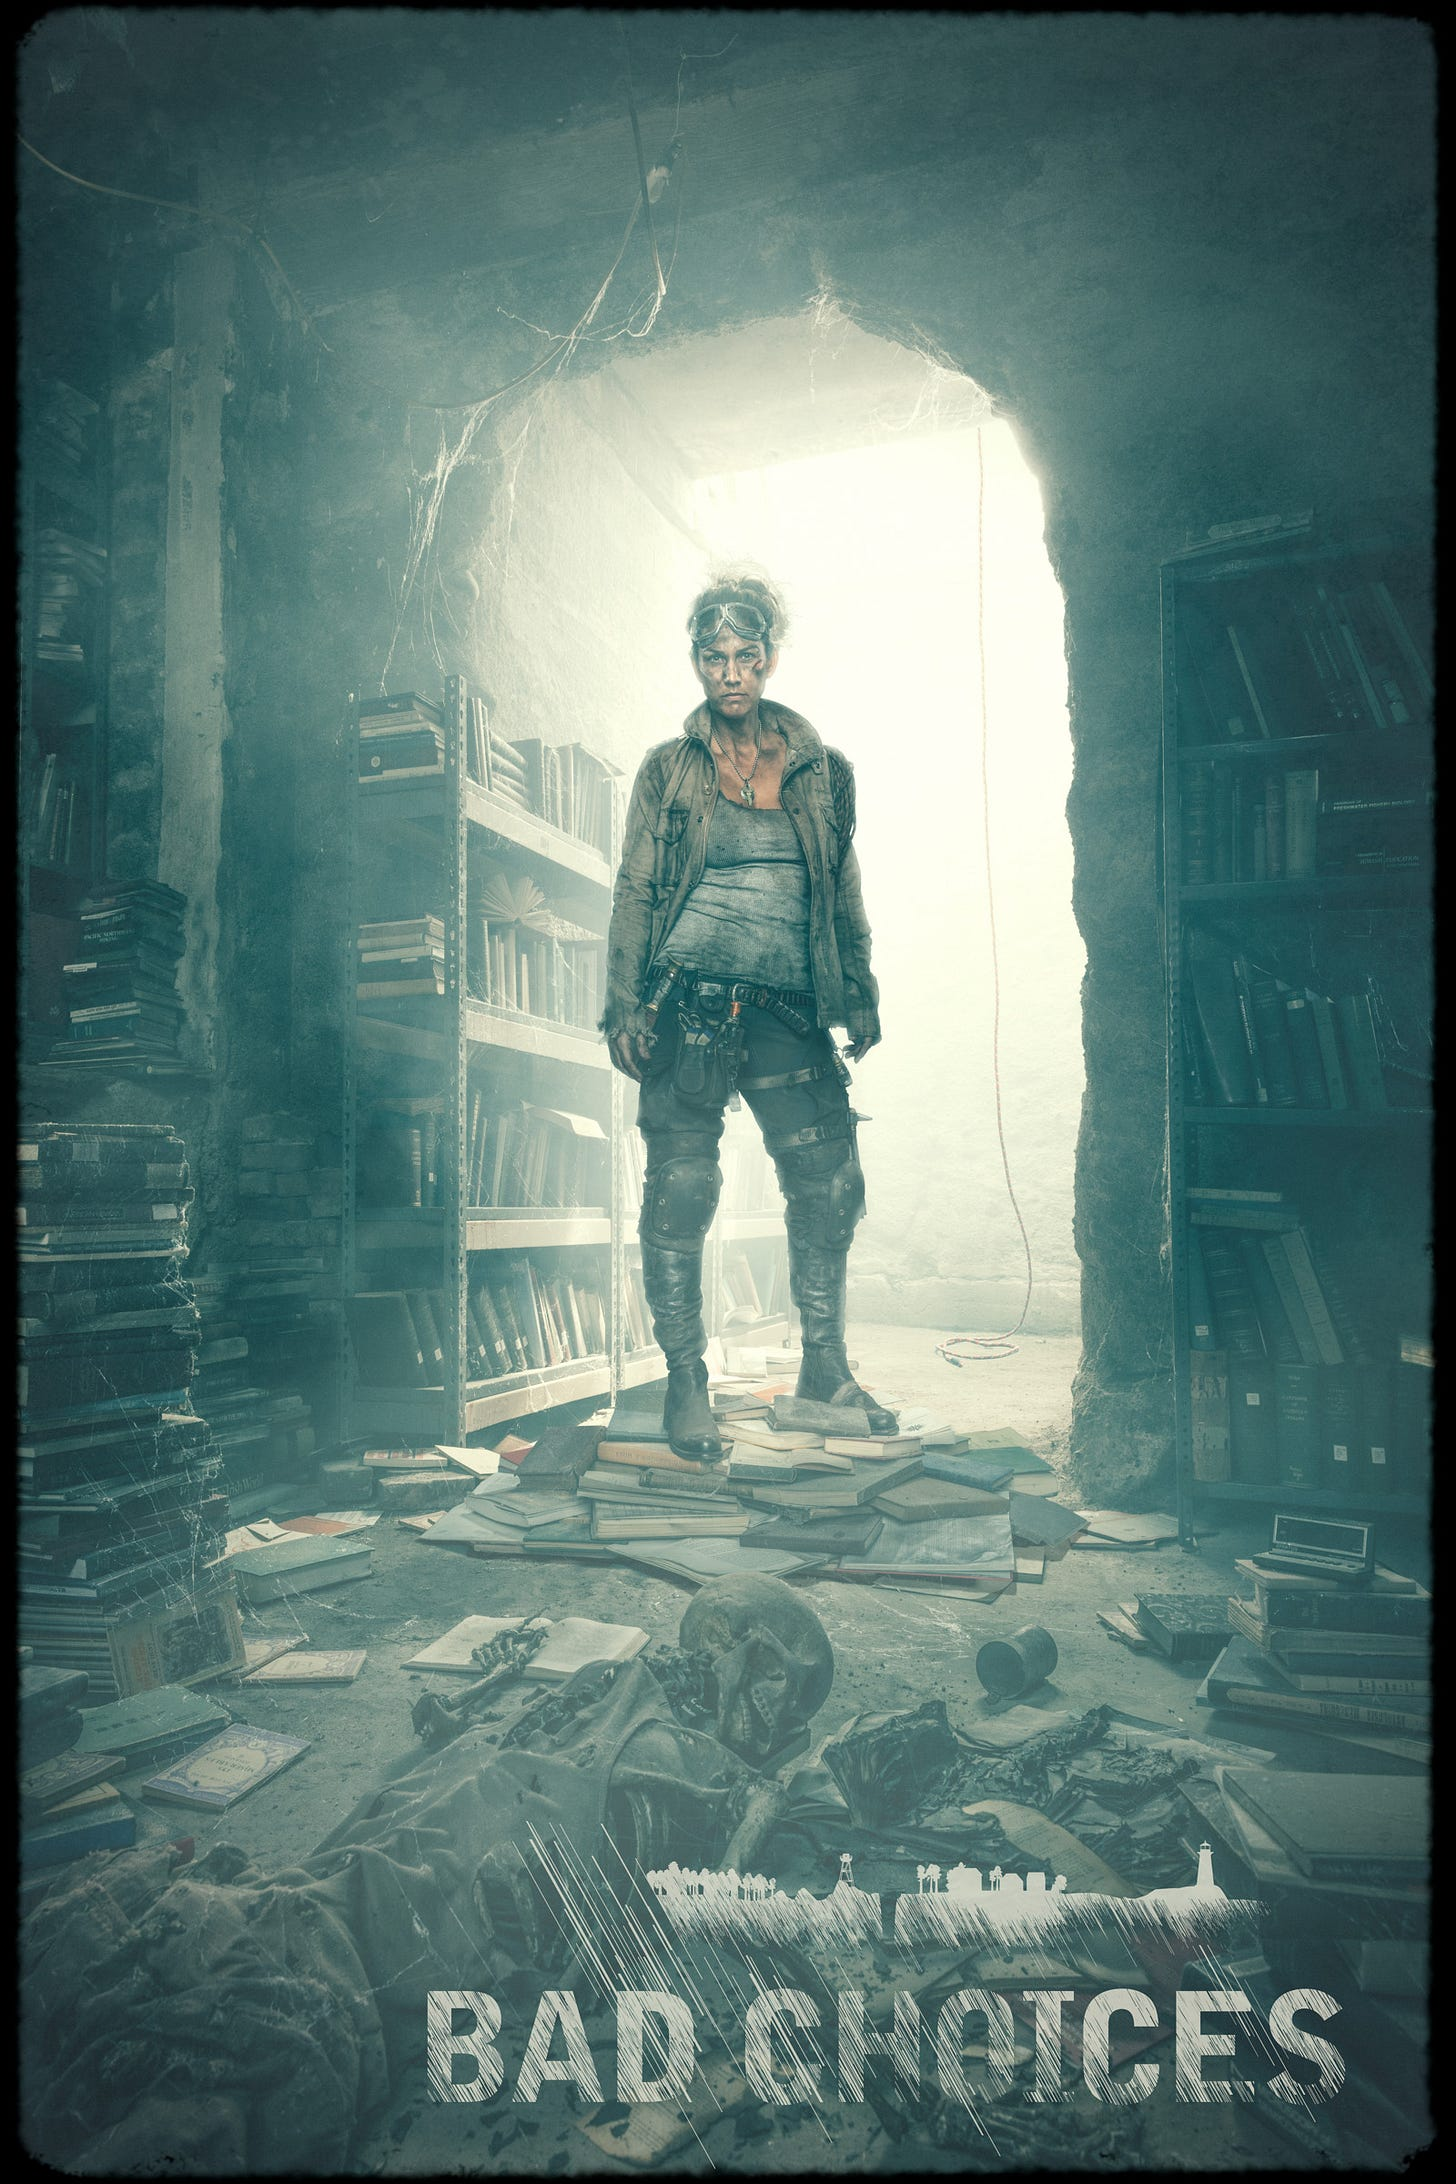 Turner is one of the characters featured in the Bad Choices Project. She has fallen into a hidden library bunker filled with old books and a skeleton.